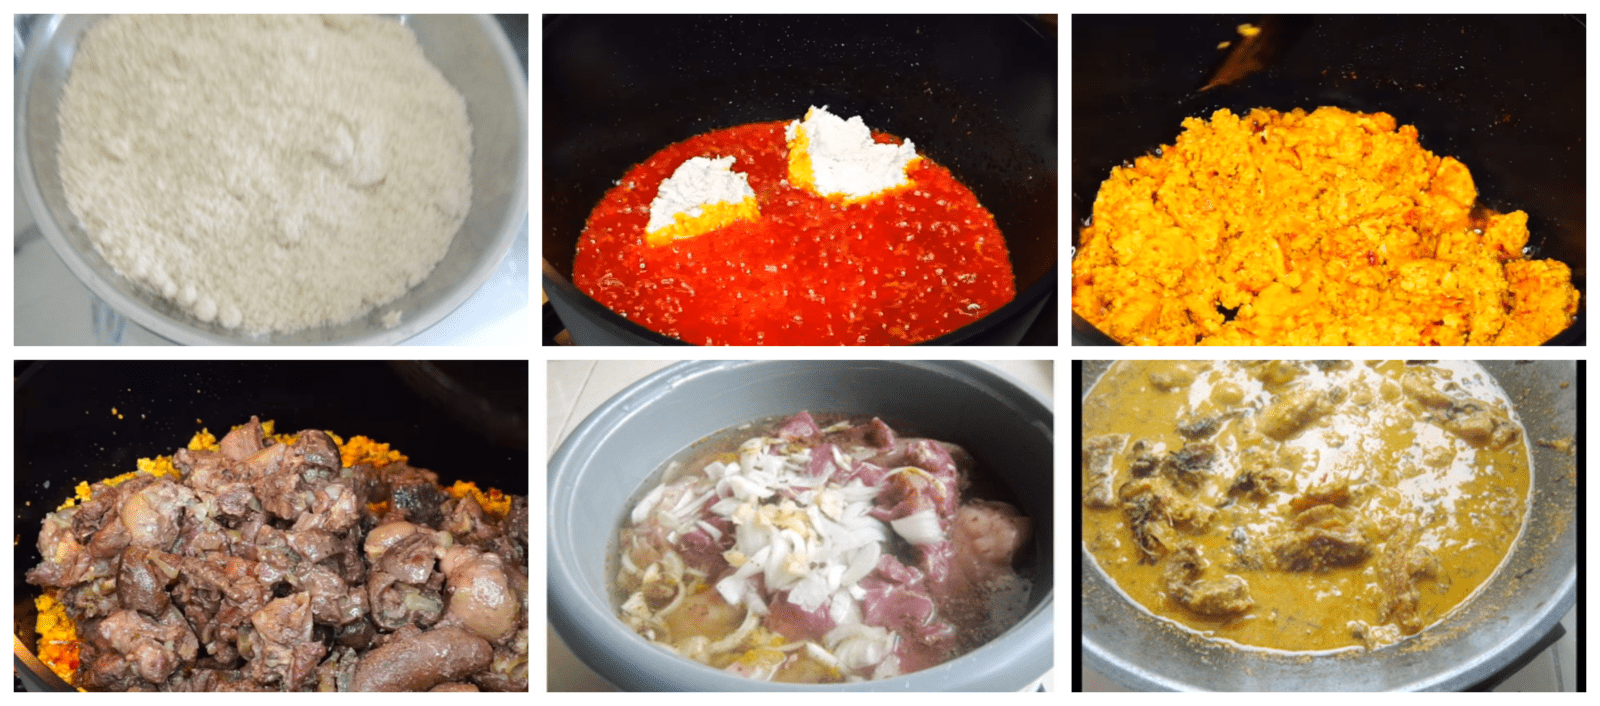 cooking all condiments together to create the egusi soup